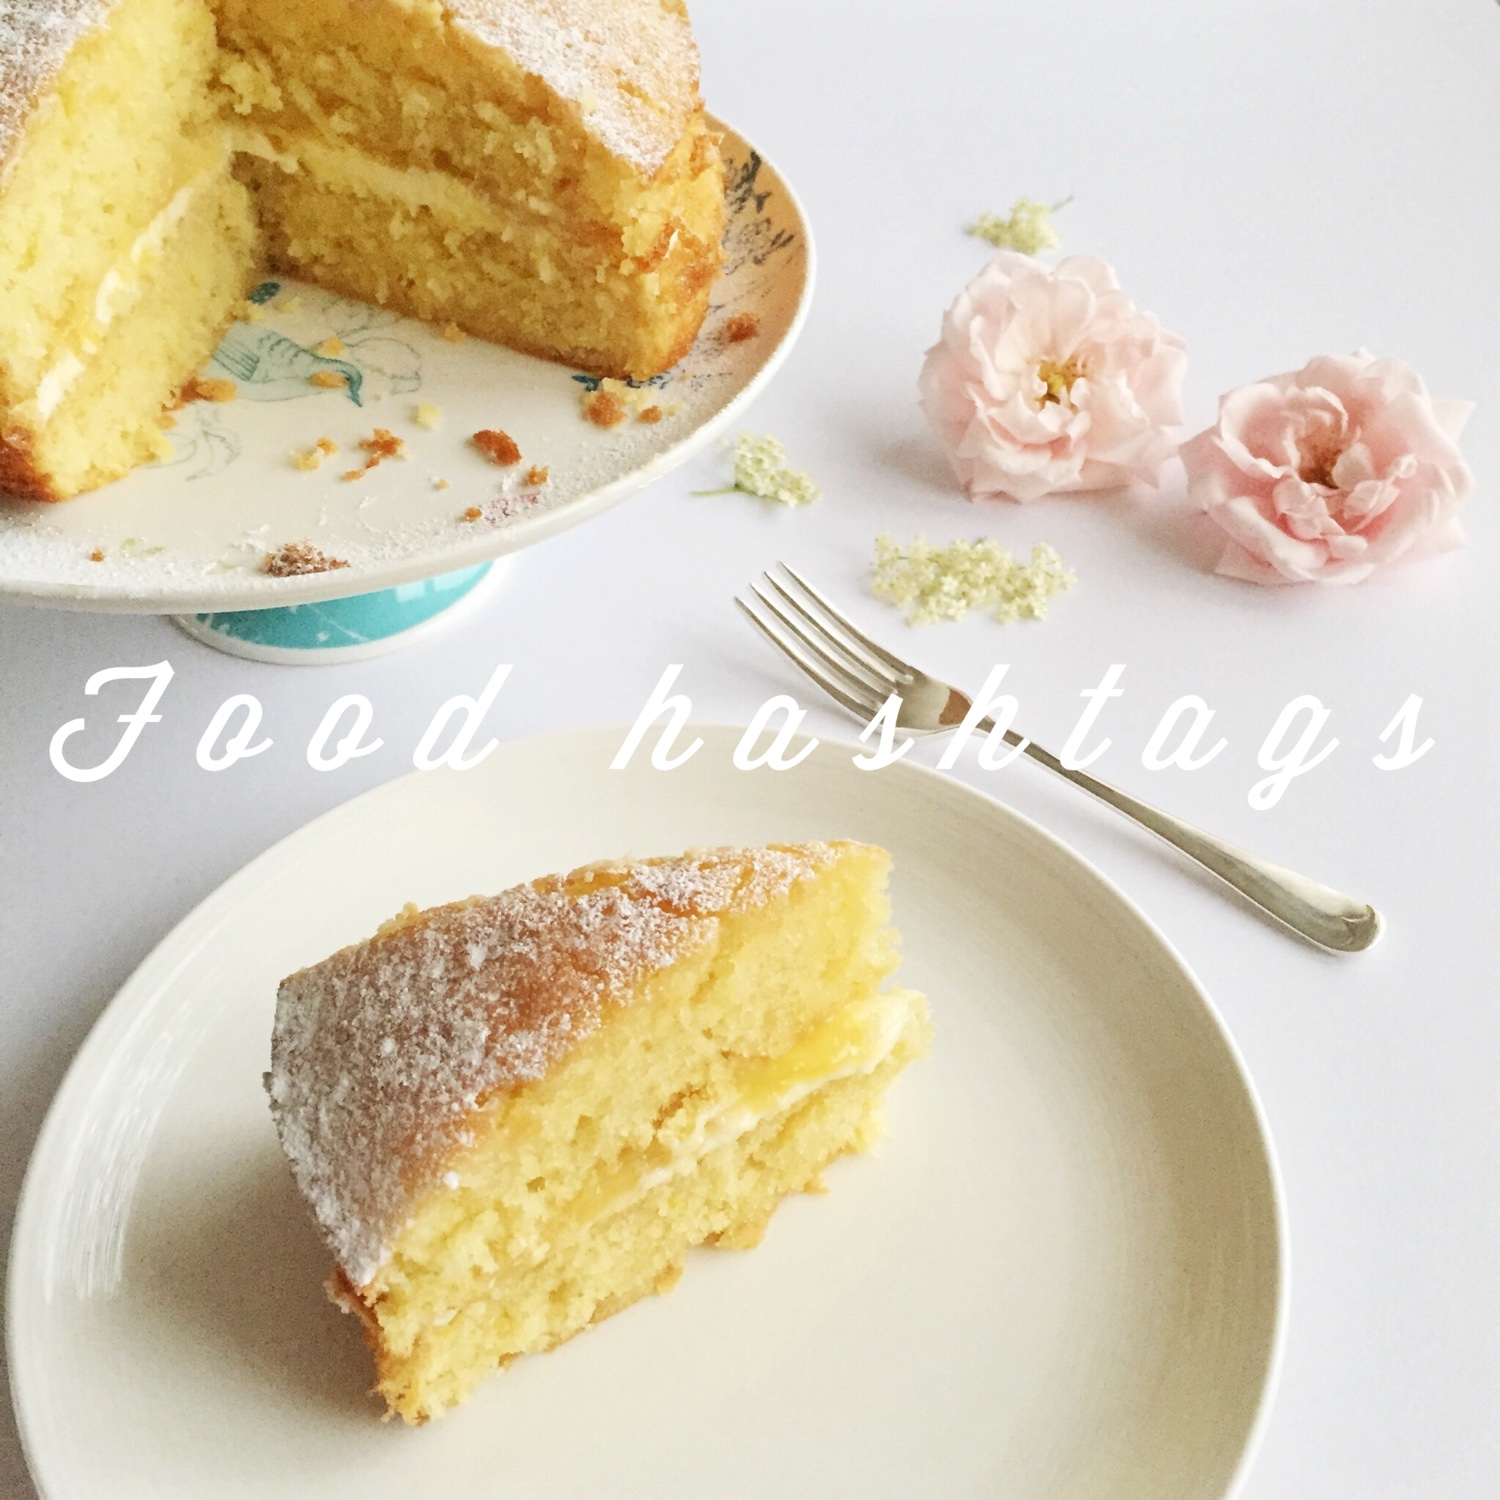 Food hashtags | Hello! Hooray!